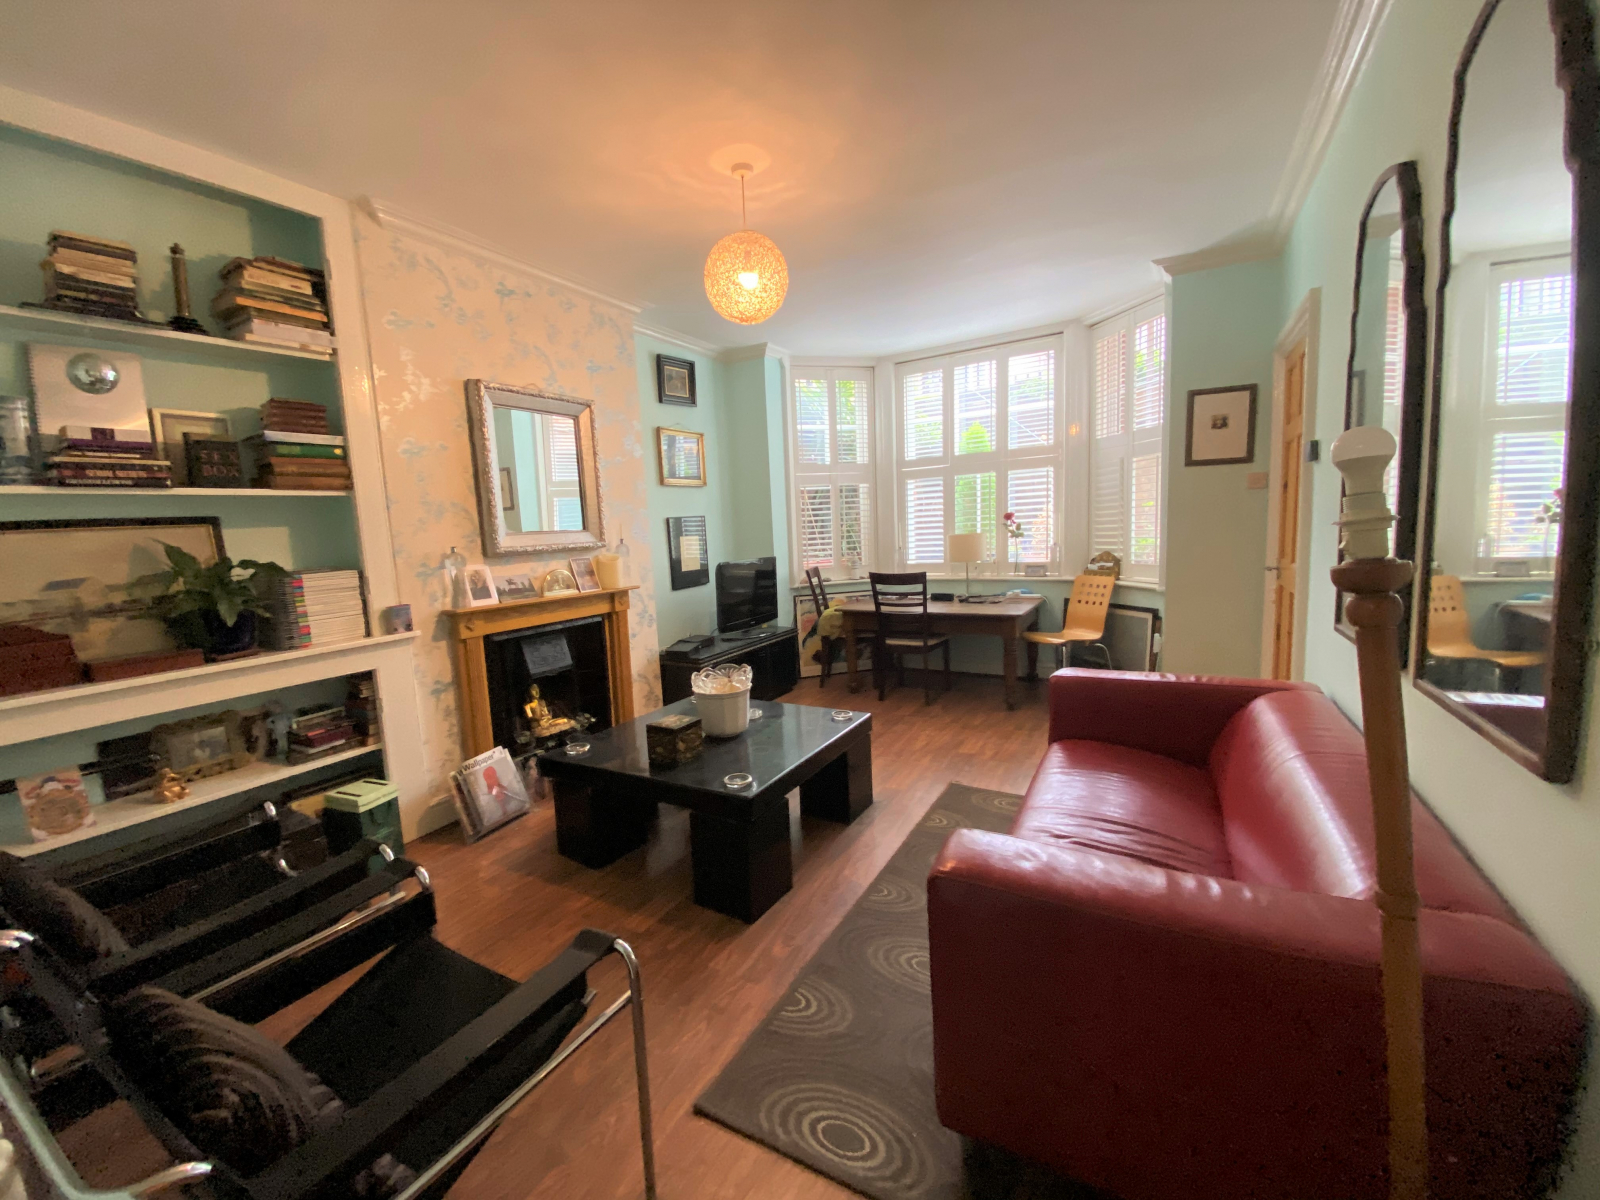 1 bed flat for sale in Barons Court Road, West Kensington, London - Property Image 1